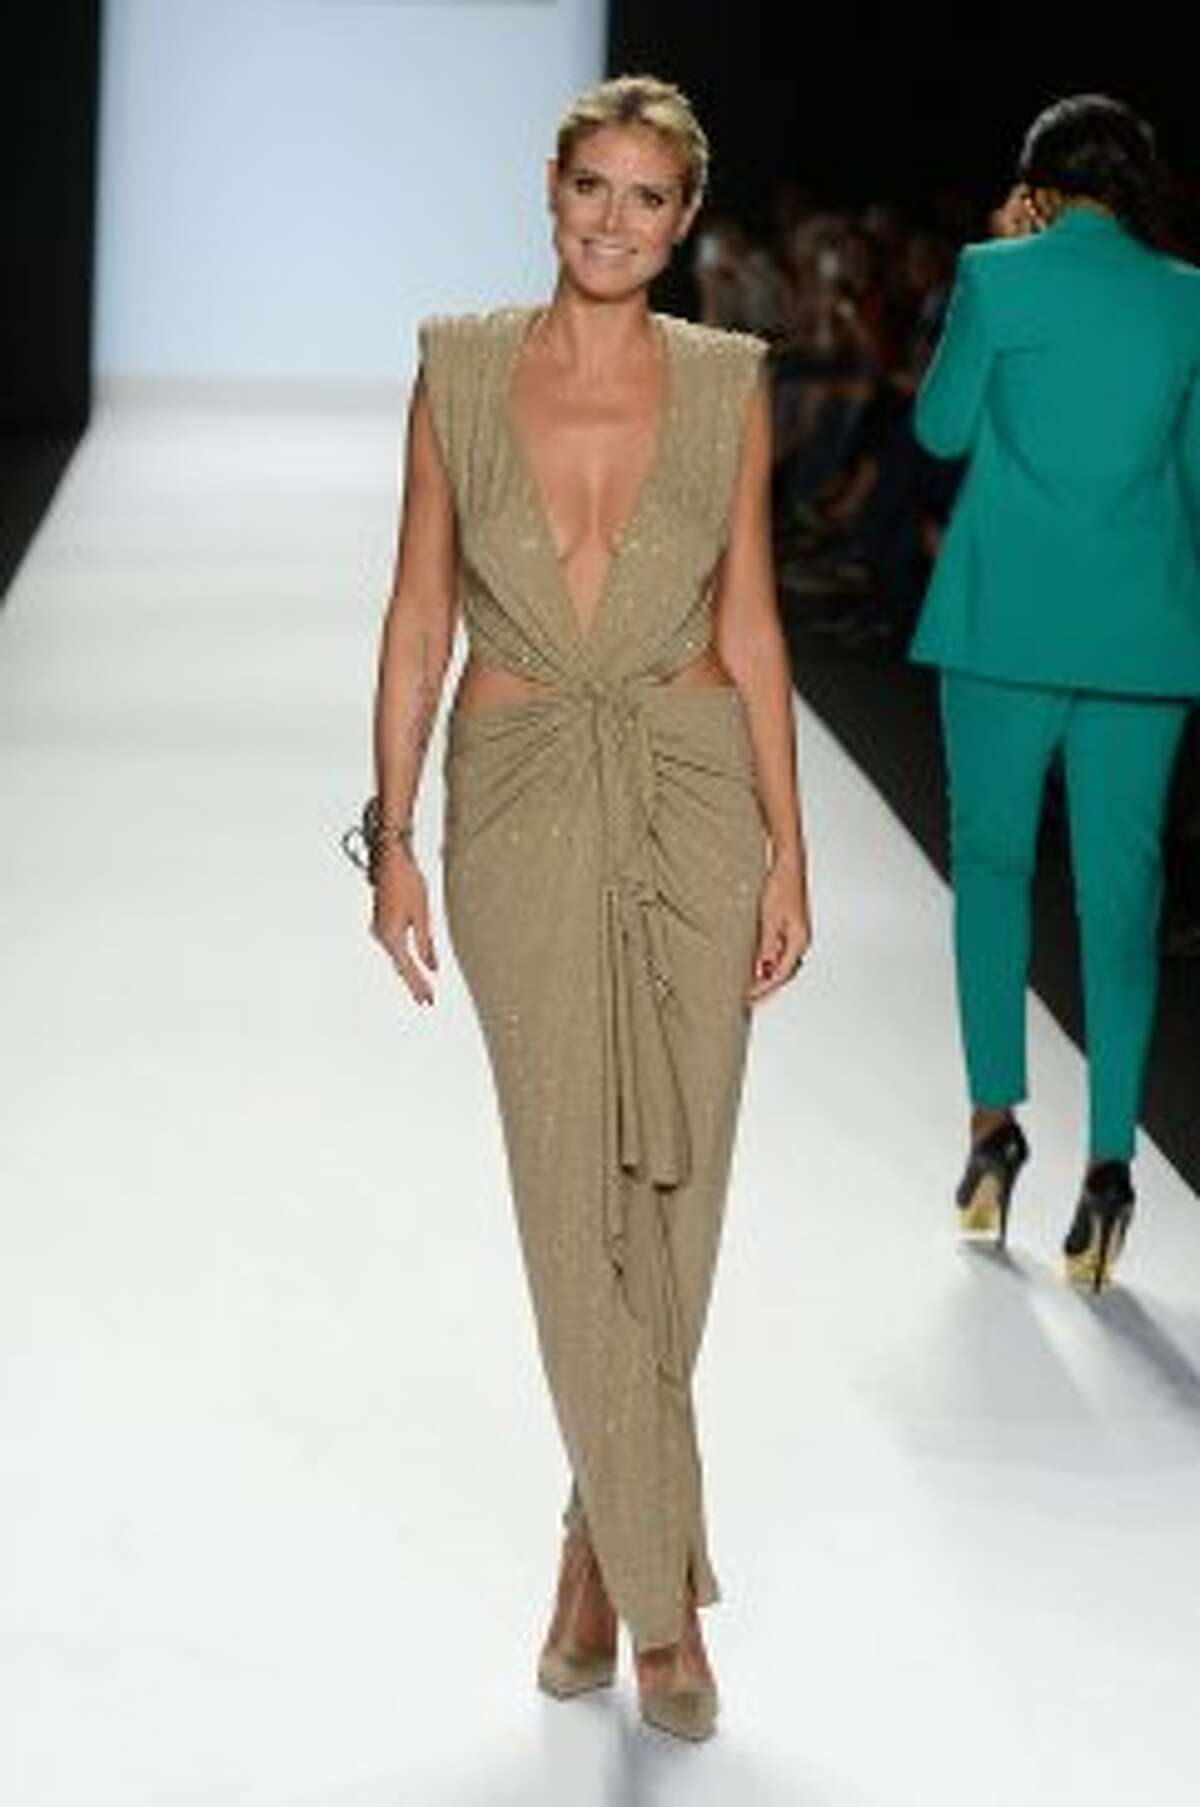 Model Heidi Klum walks the runway at the Project Runway Spring 2013 show during Mercedes-Benz Fashion Week. (Frazer Harrison / Getty Images for Mercedes-Benz)